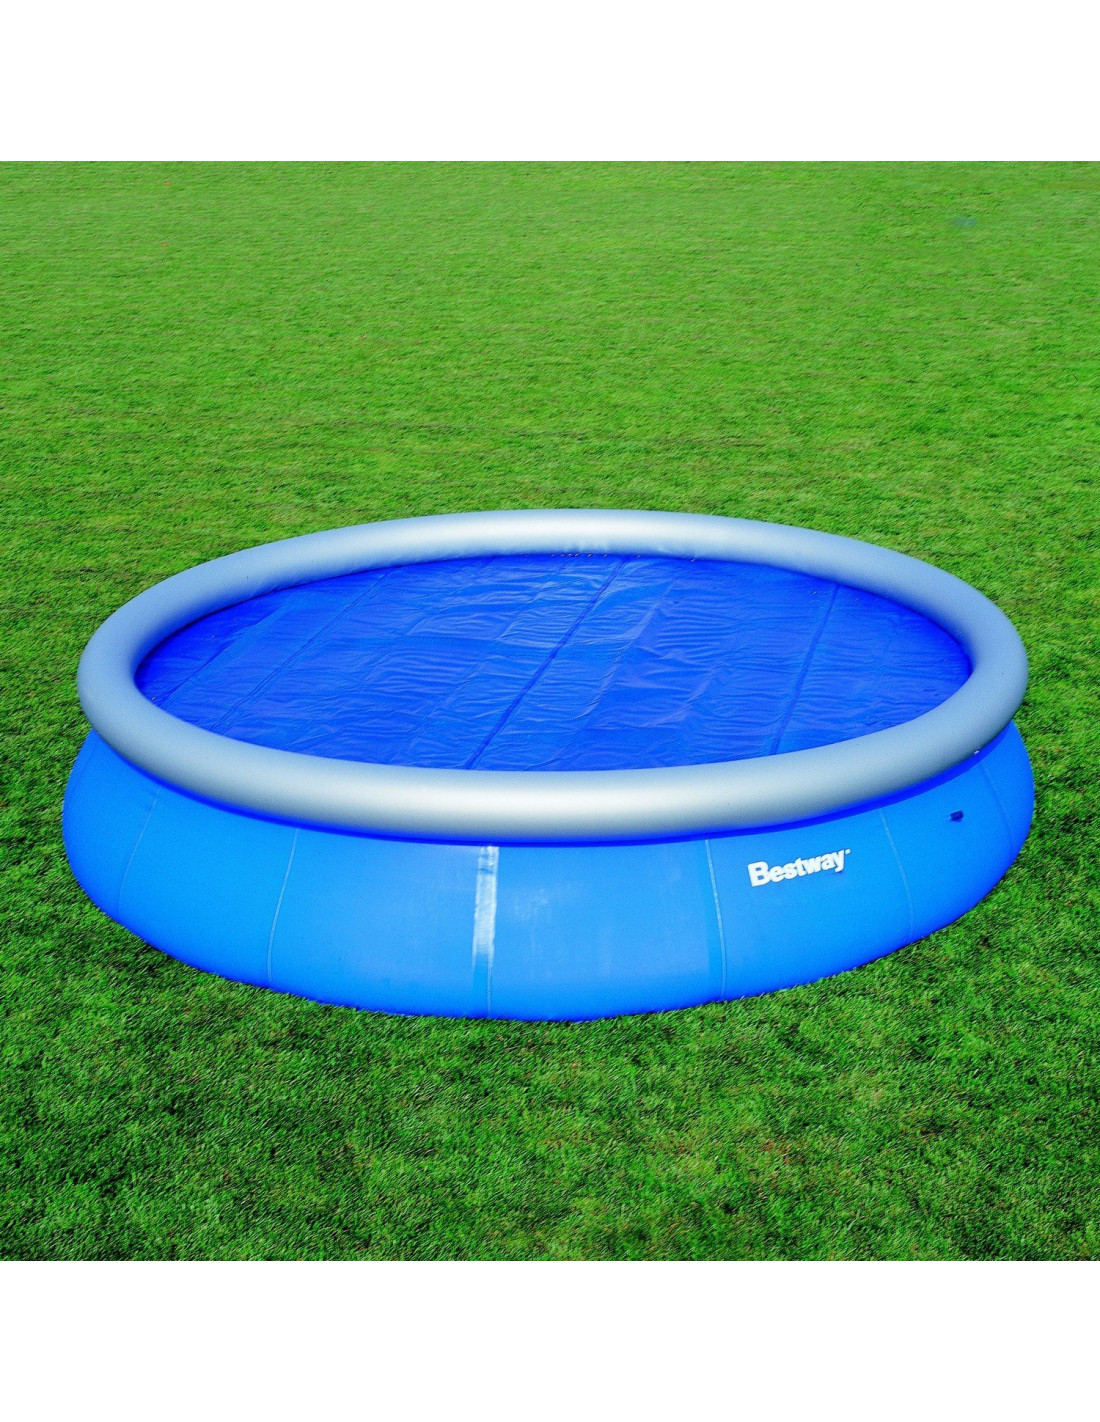 Bache piscine tubulaire excellent bache piscine tubulaire for Enrouleur bache piscine intex